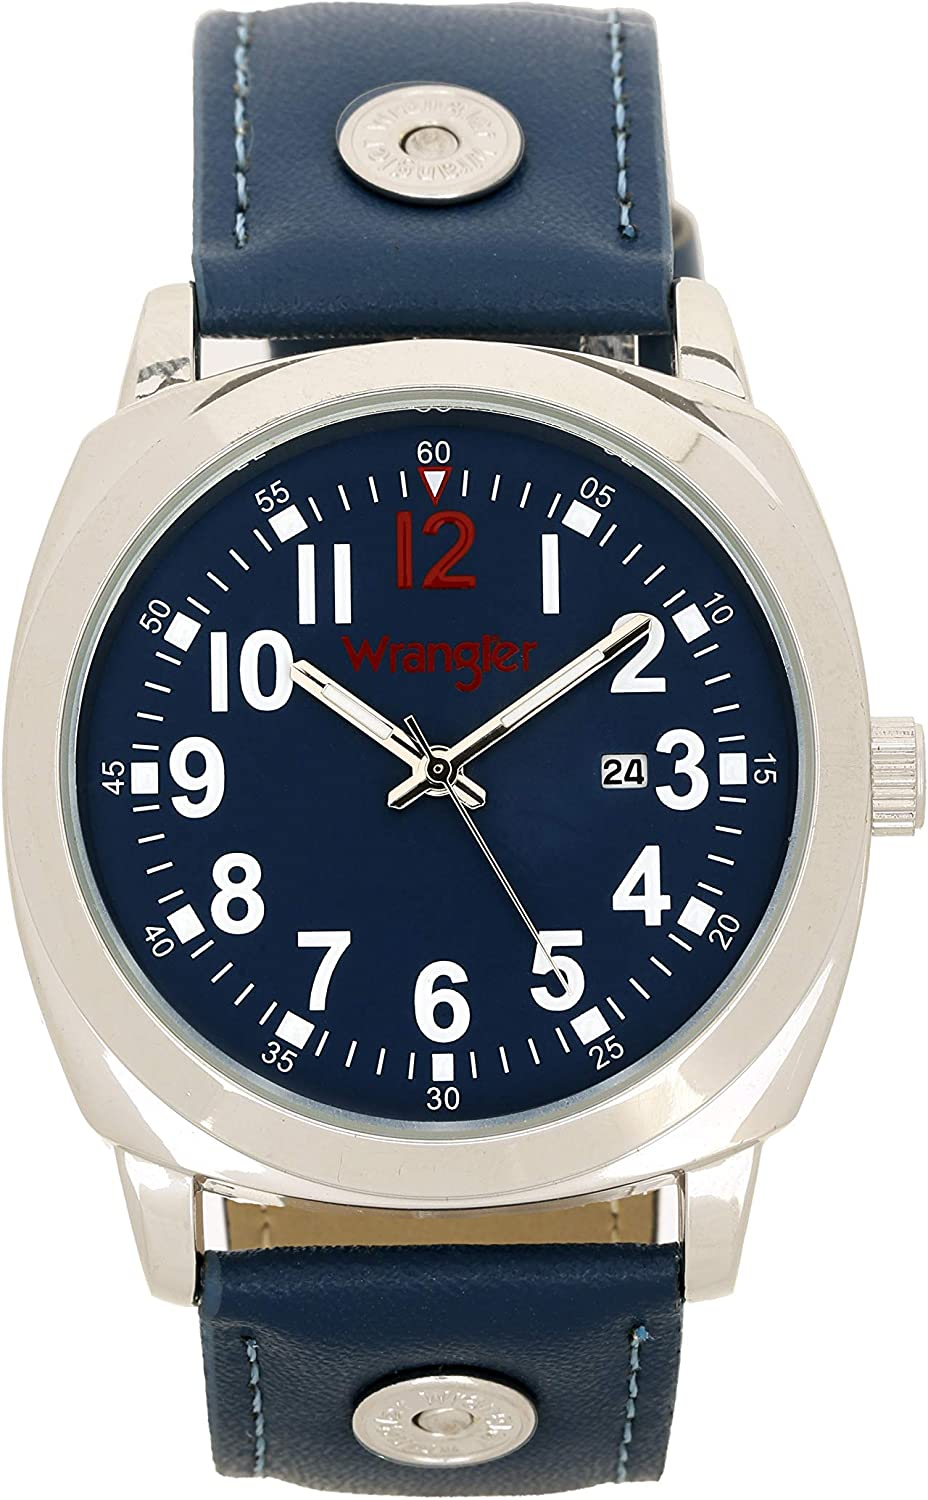 Wrangler Men s Watch, 44mm Polyurethane Band with Rivets, Second Hand Date Function